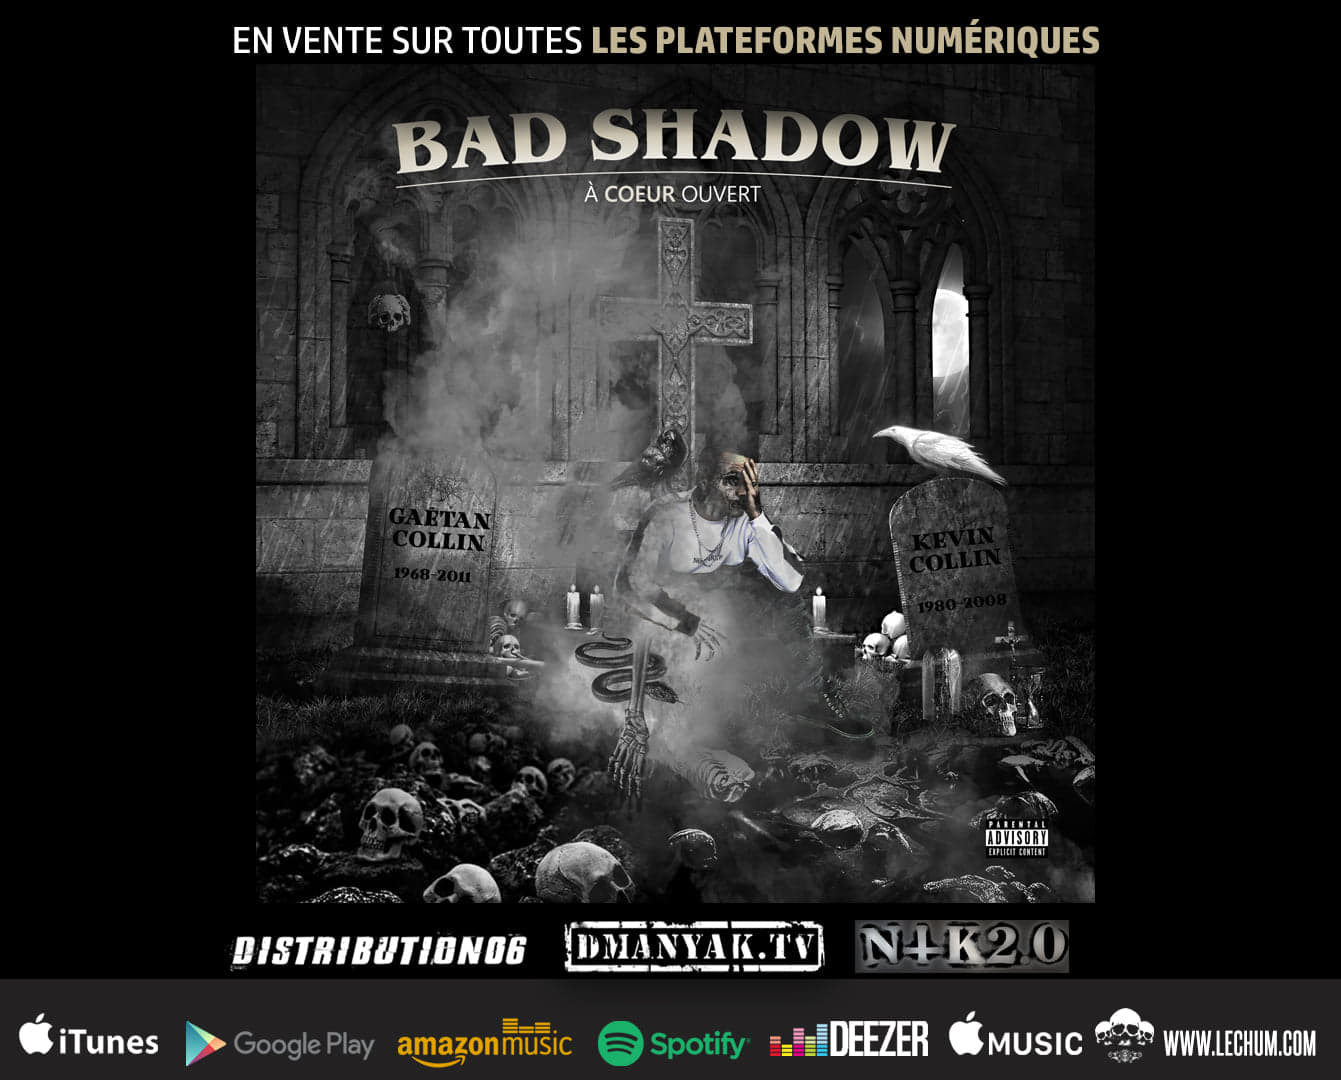 Bad Shadow - A Coeur ouvert